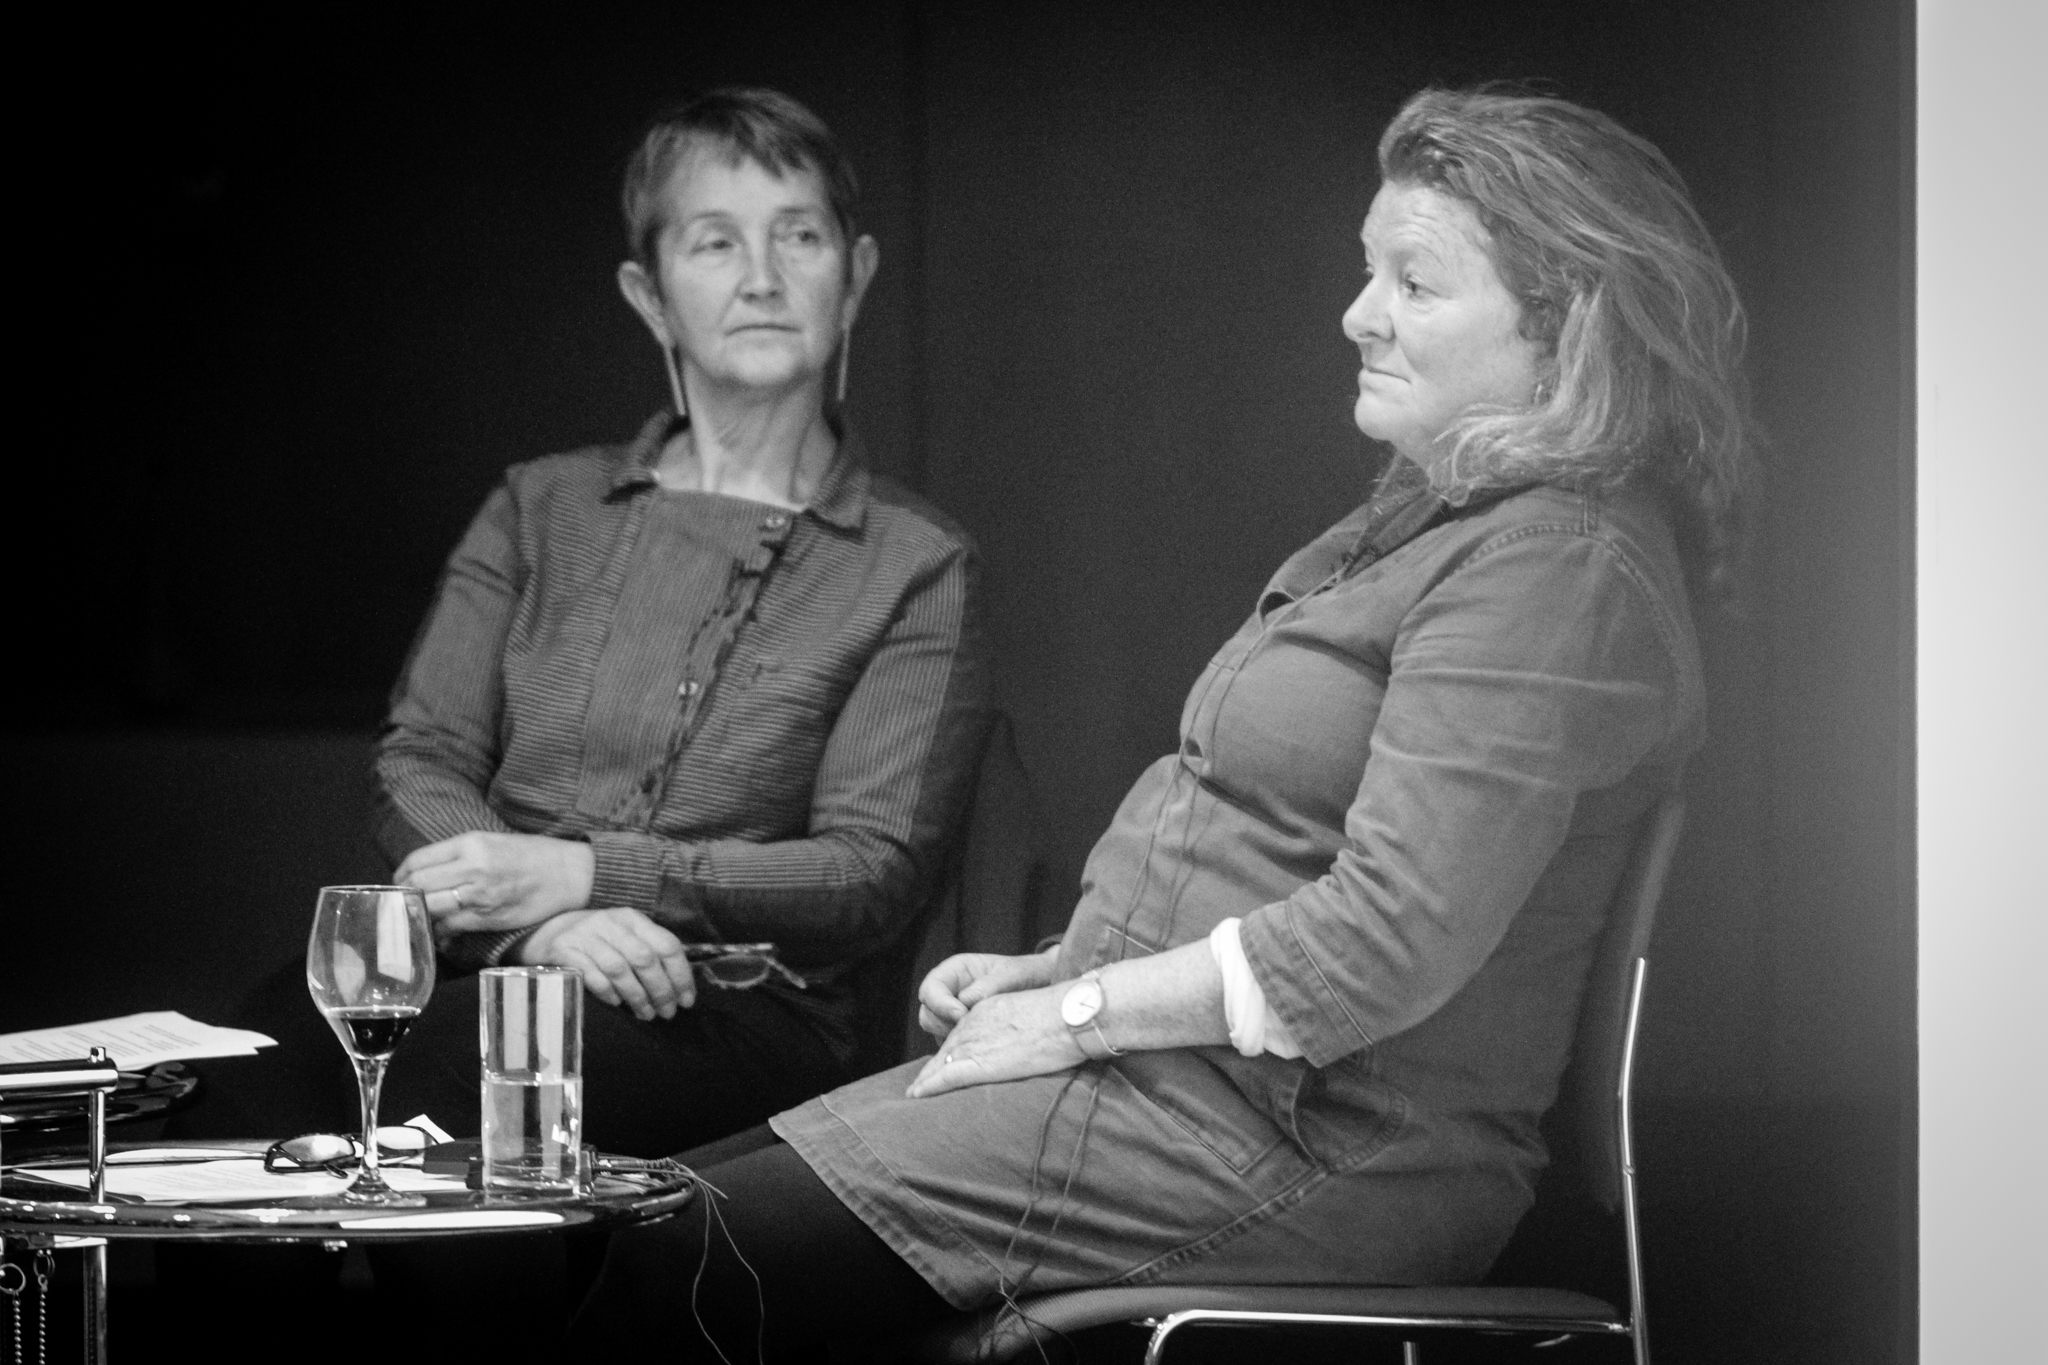 British Council Talk - Frances Morris and Rachel Whiteread